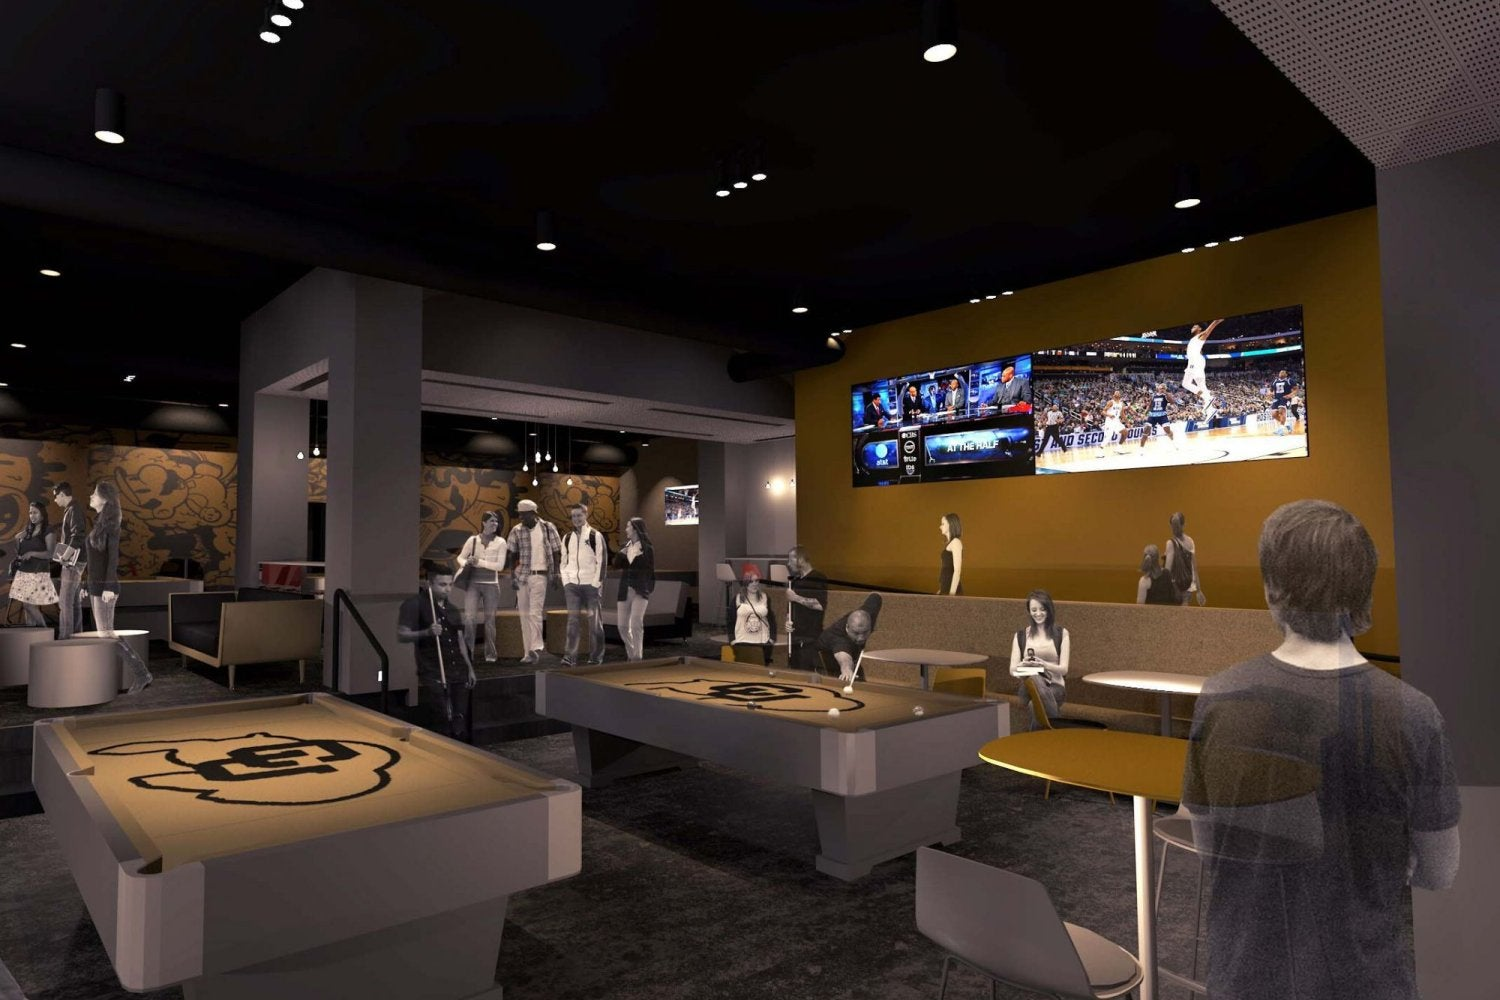 A rendering of what The Connection billiards area will look like after renovation